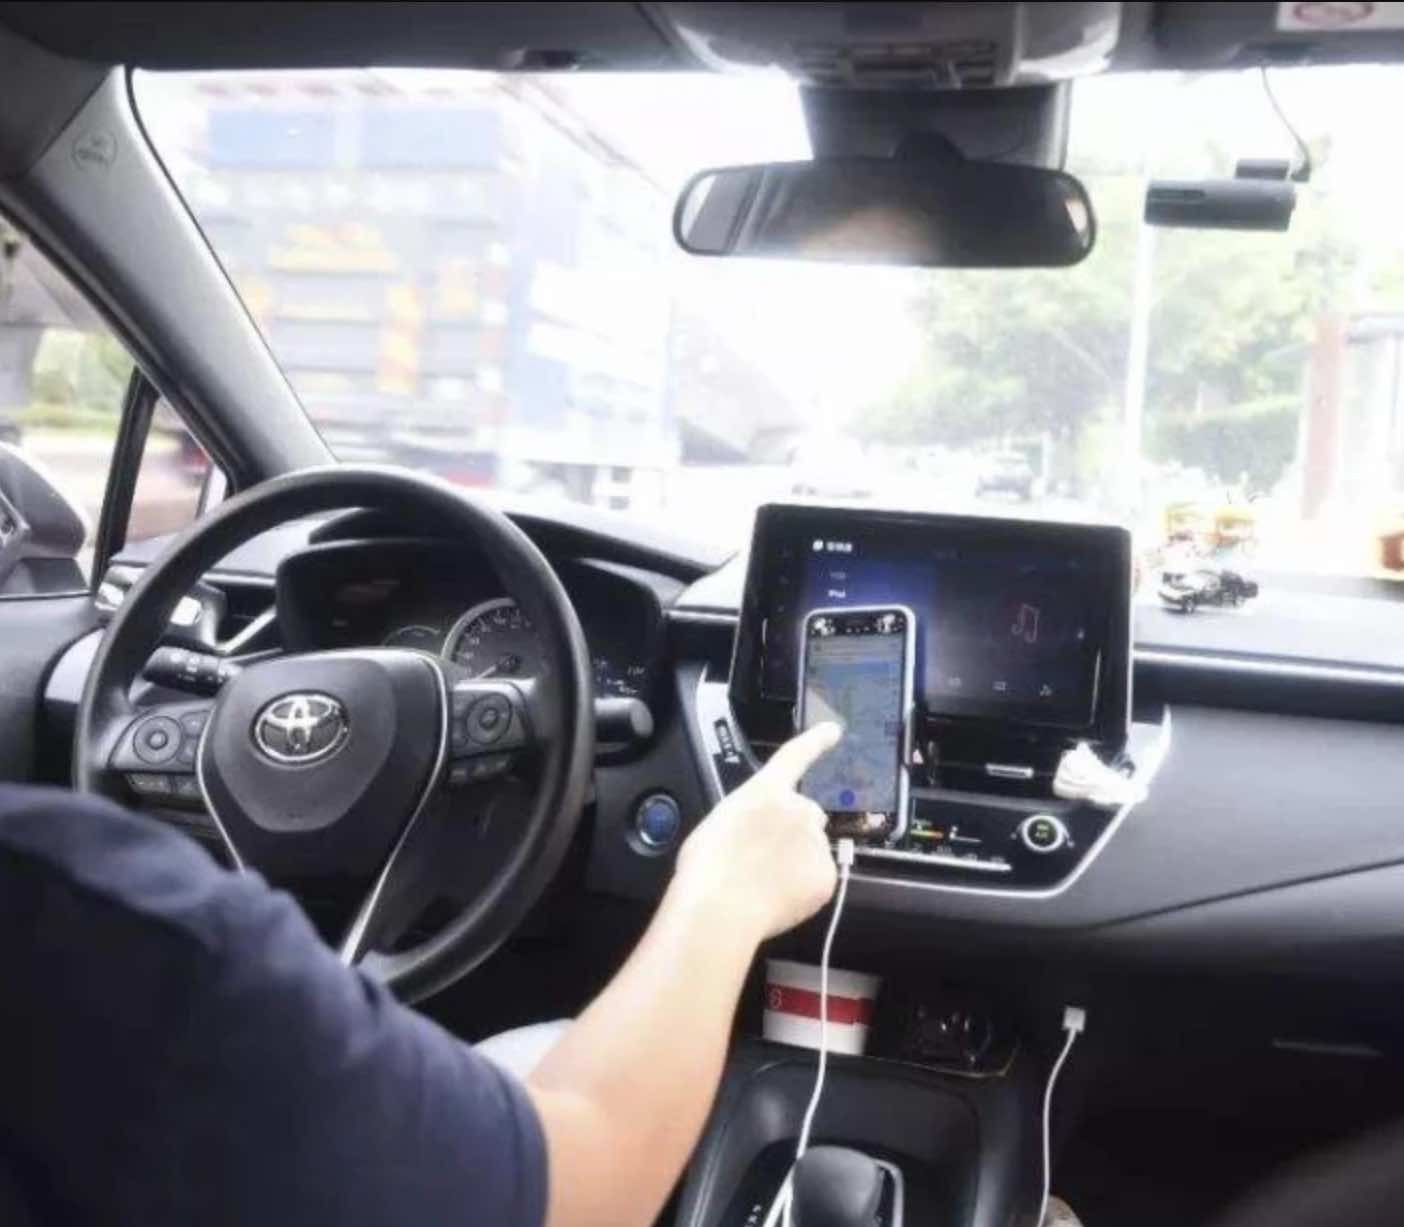 How Using Mobile Phone Navigation while Driving can Make you Break Traffic Rules